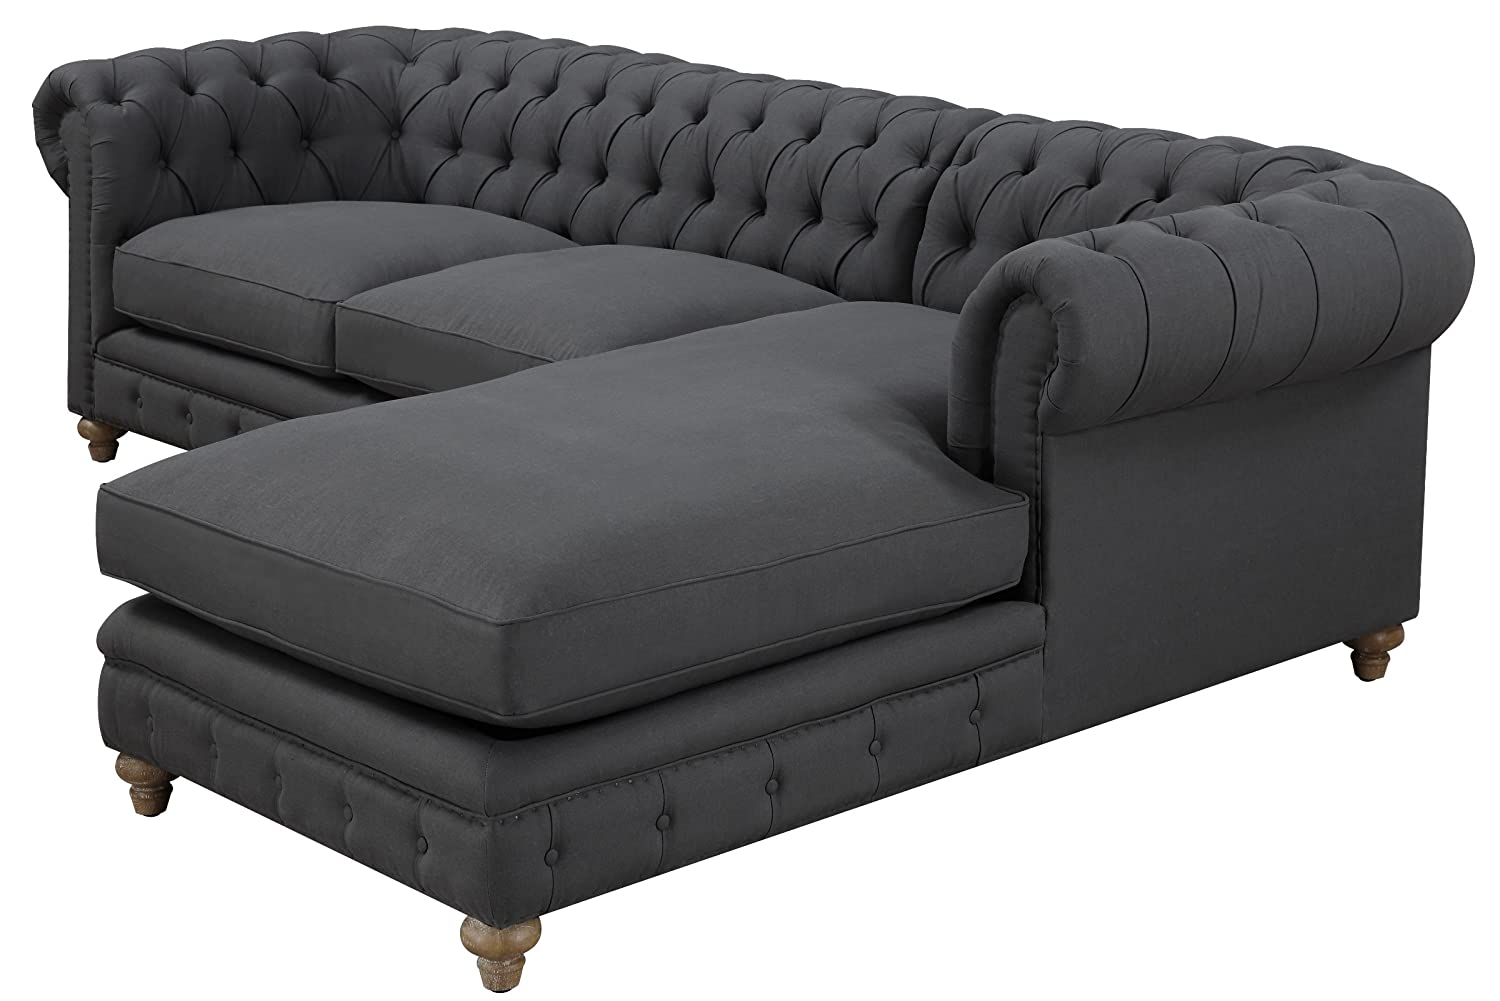 Amazon.com TOV Furniture The Oxford Collection Modern Fabric Upholstered Sectional Furniture Sofa Couch With Right Arm Chaise For Living Room ...  sc 1 st  Amazon.com : tufted sectional - Sectionals, Sofas & Couches